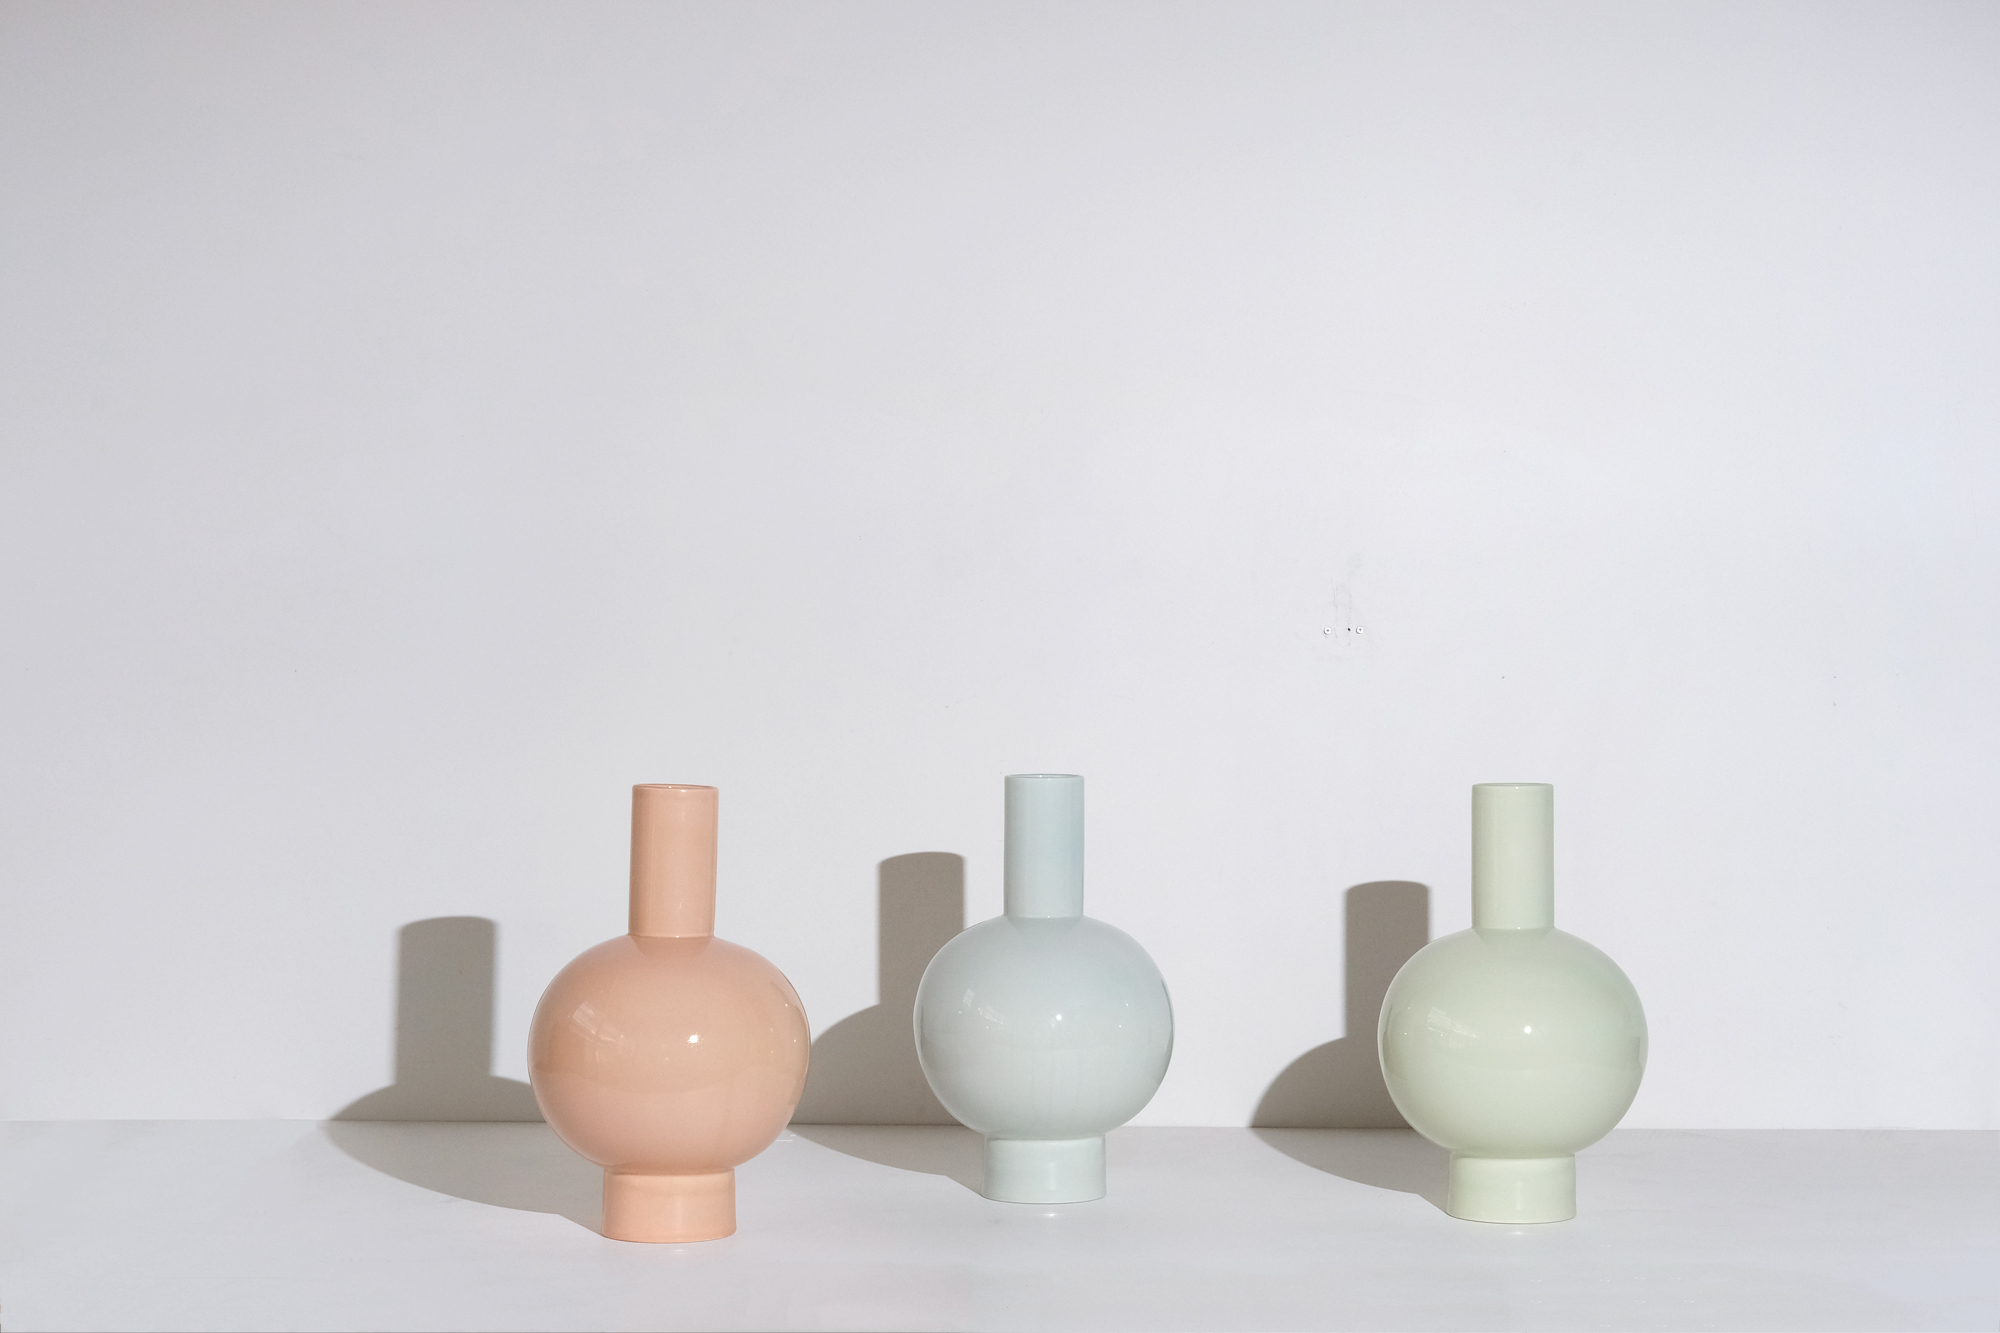 Vase-Group-low.jpg